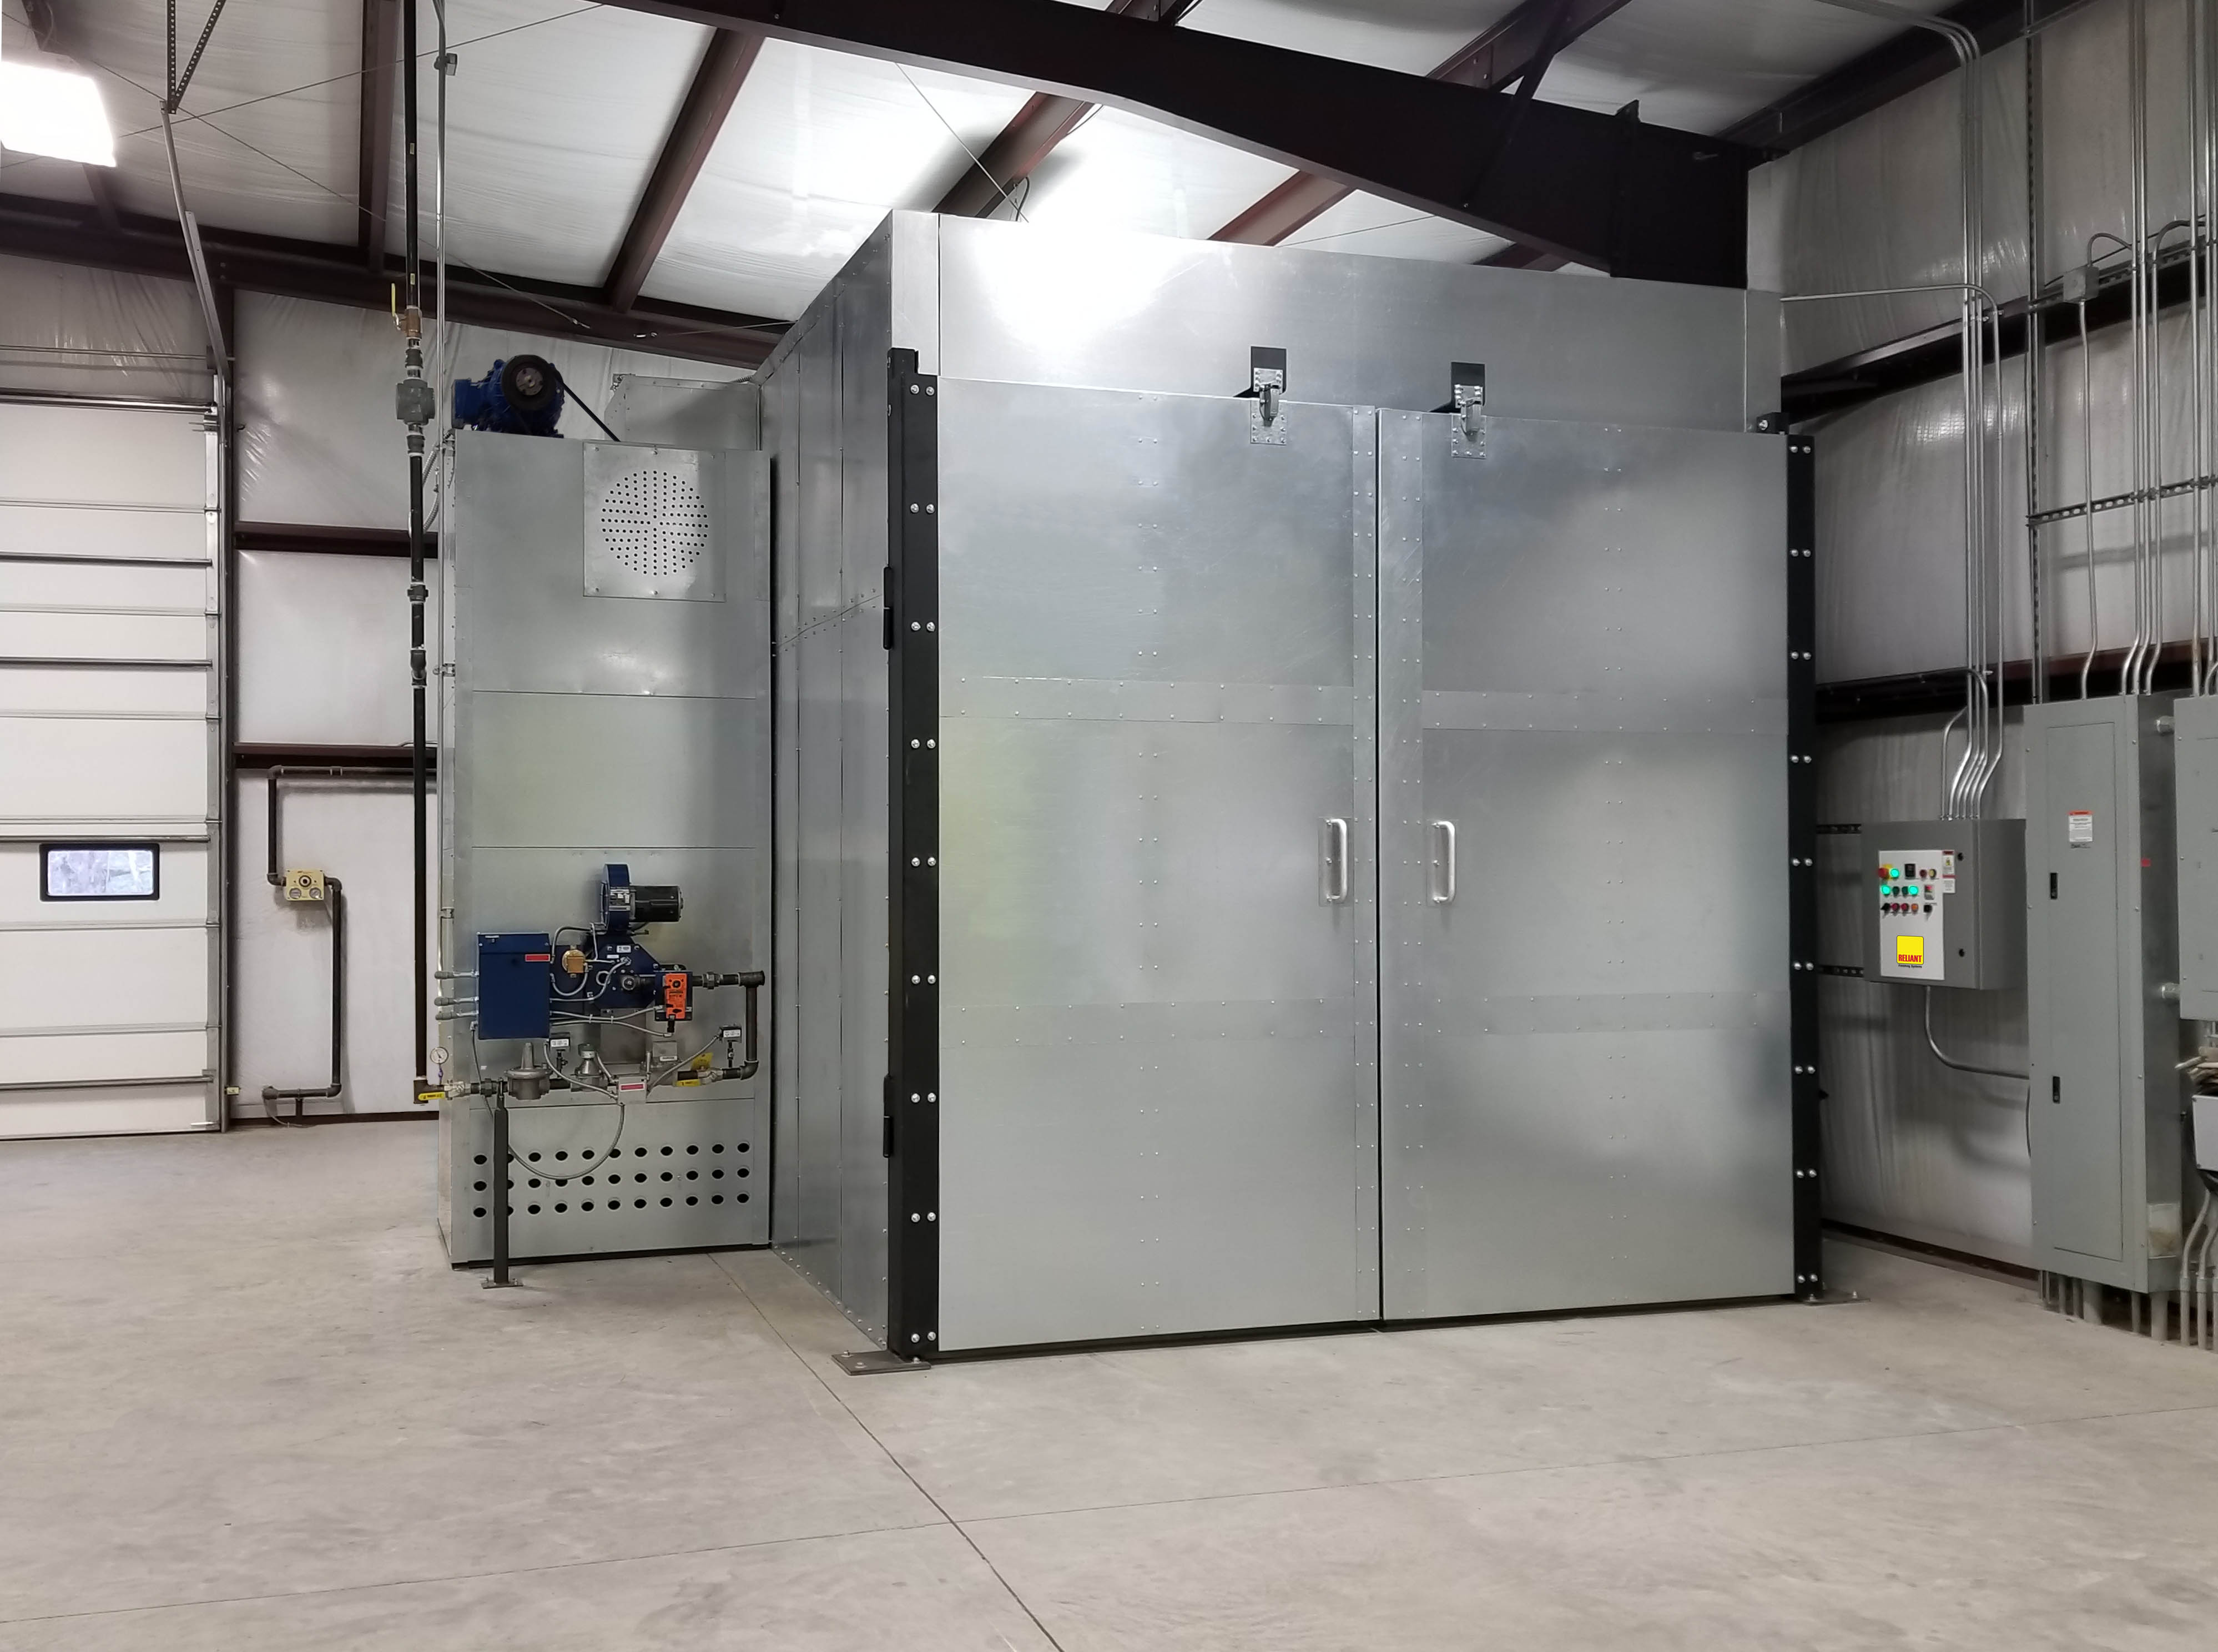 Powder Coating Equipment | Latest Systems, Tools, Supplies